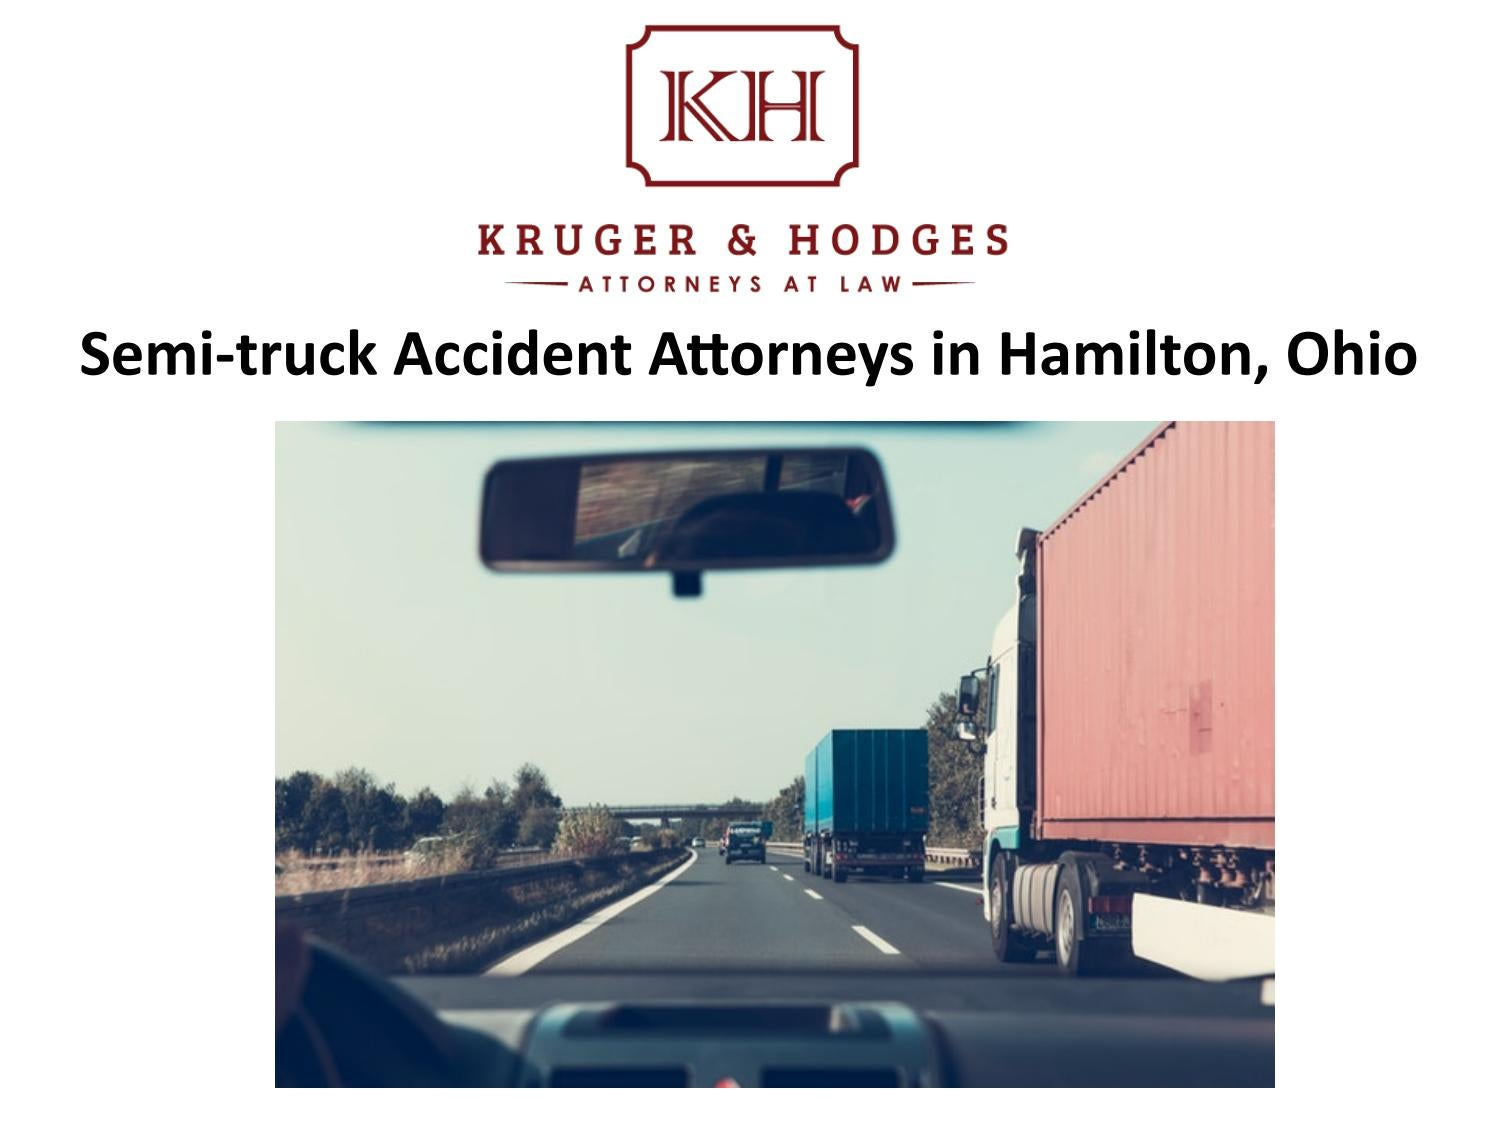 Semi-Truck Accident Attorneys in Hamilton, Ohio by Kruger